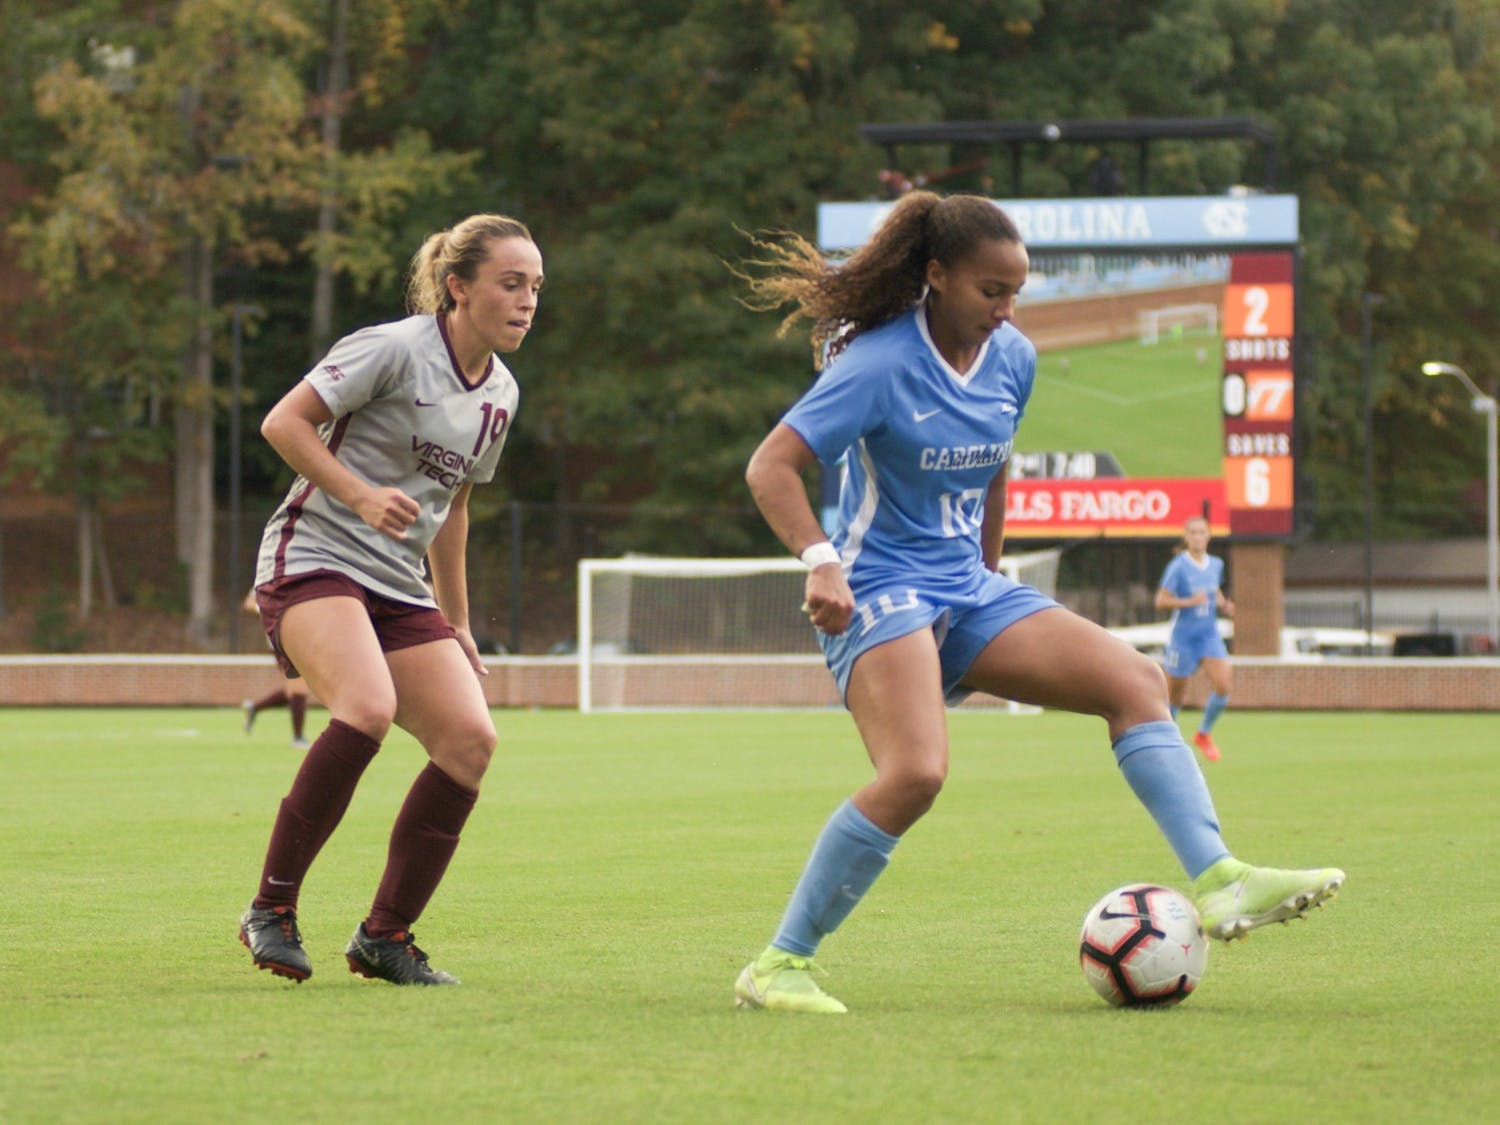 Sophomore forward Rachel Jones (10) creates space between herself and her defender in order to open up the field for new scoring opportunities in the  Heel's ACC regular-season title win against Virginia Tech on Sunday, Oct. 27, 2019.